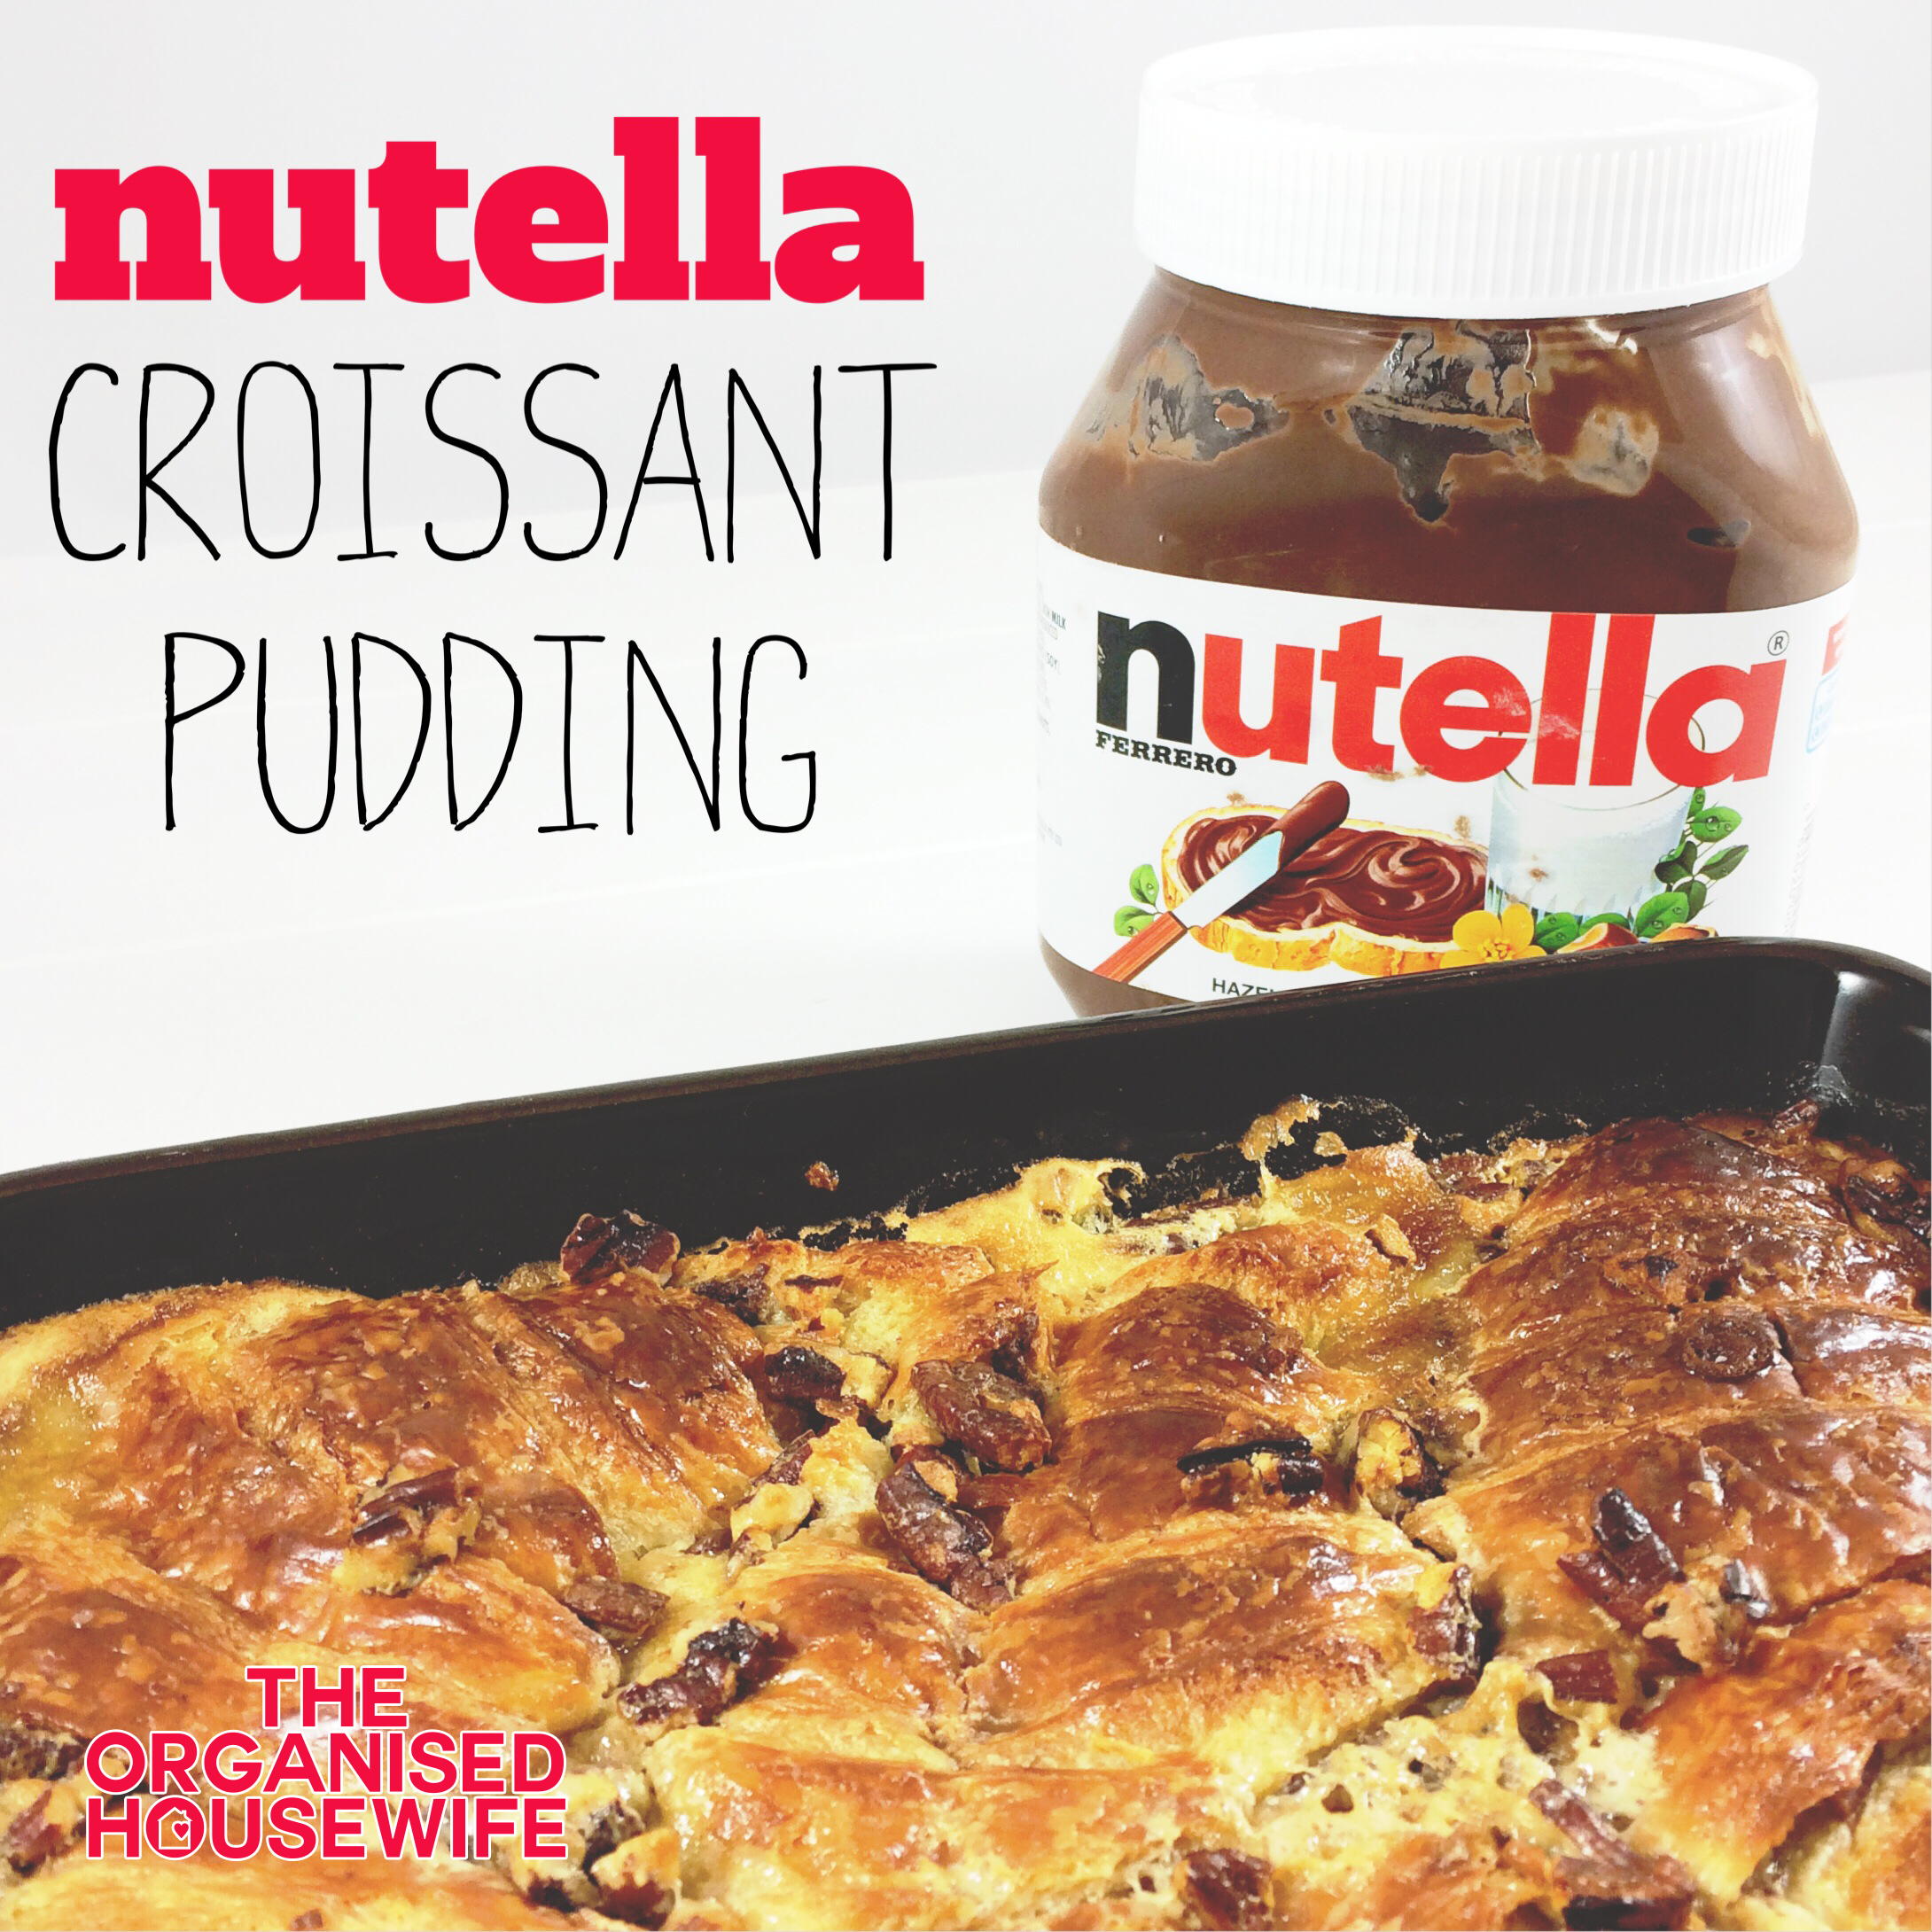 {The Organised Housewife} Nutella Croissant Pudding